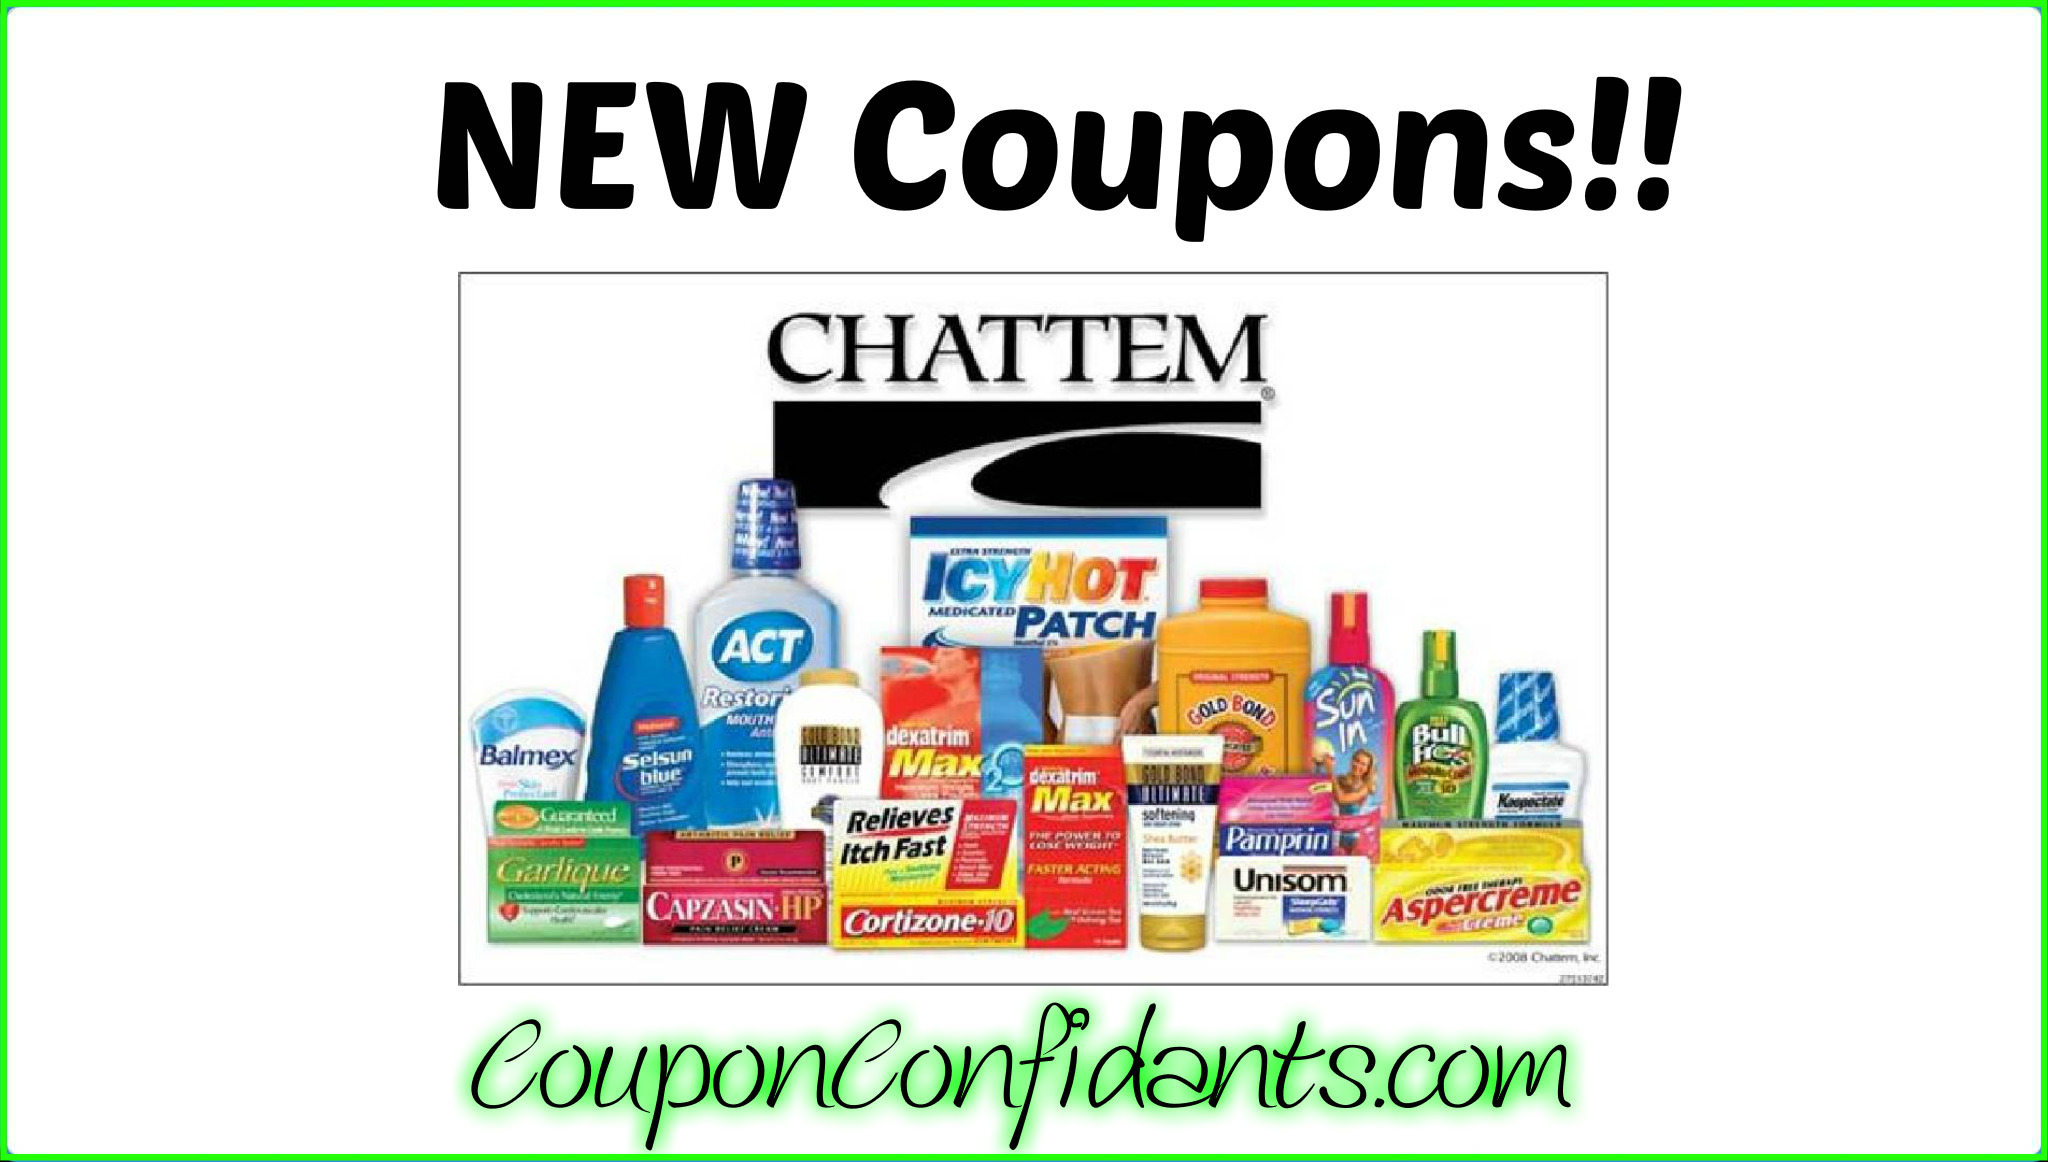 picture about Icy Hot Coupons Printable called Clean Chattem Producers large relevance discount coupons!!! ⋆ Coupon Confidants